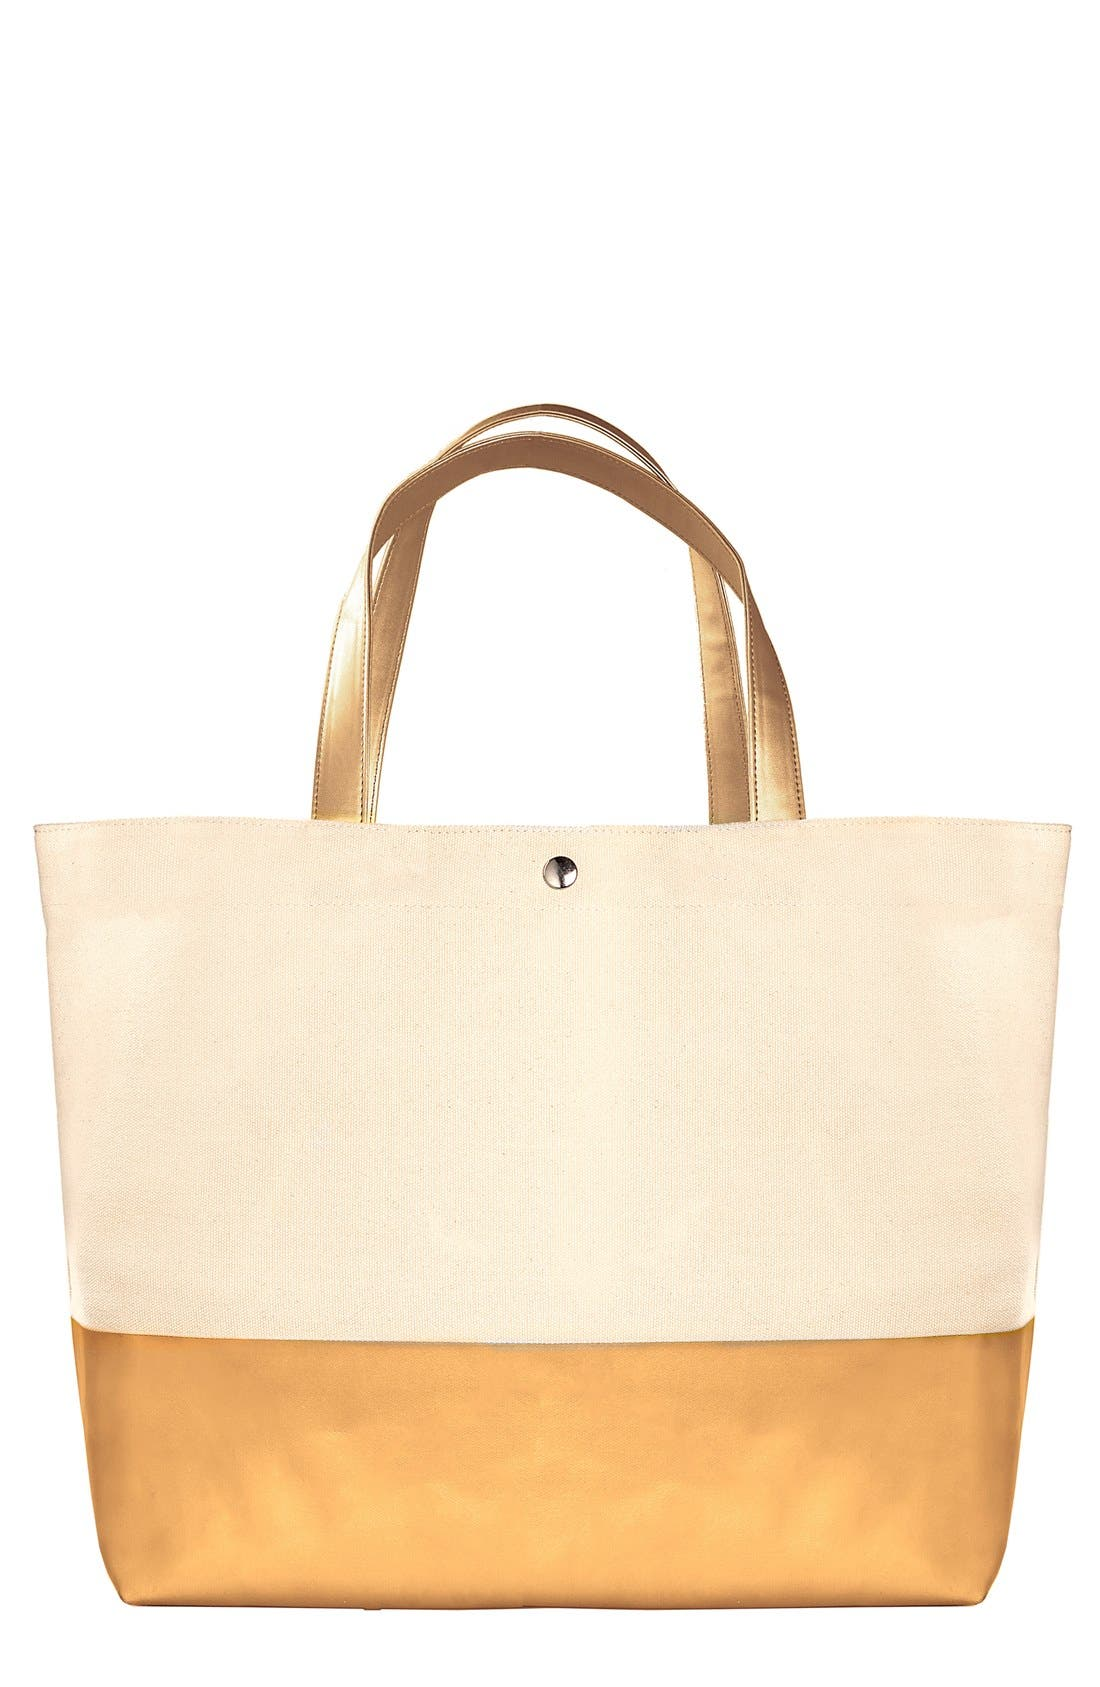 Monogram Canvas Tote,                             Main thumbnail 1, color,                             GOLD